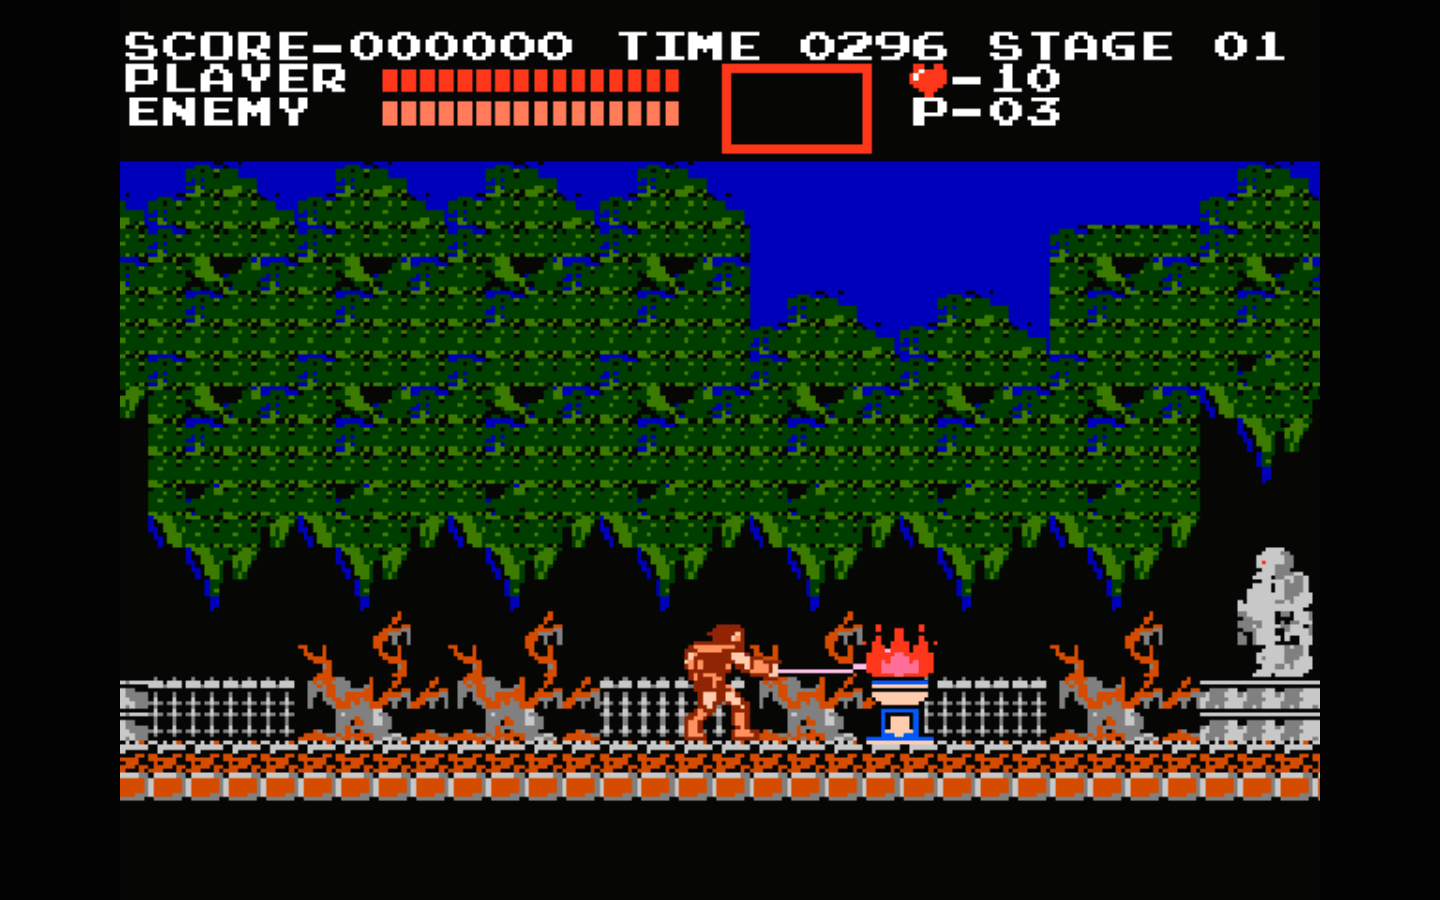 Castlevania Nes Wallpaper if a Nes Game With Little